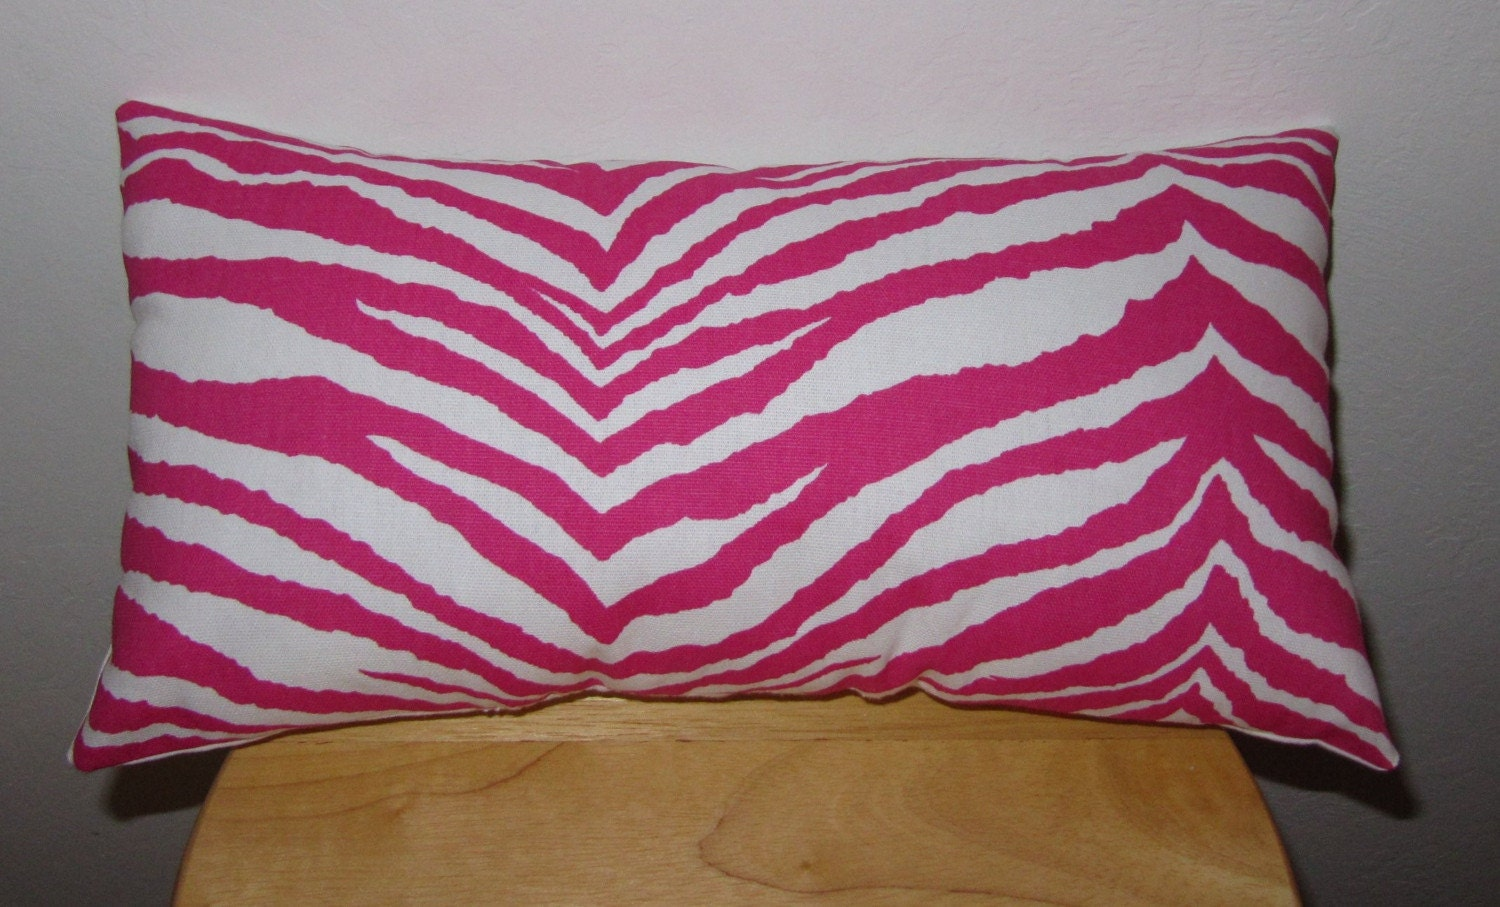 Hot Pink And Zebra Throw Pillows : Hot Pink Zebra Throw Pillow/Lumbar Pillow